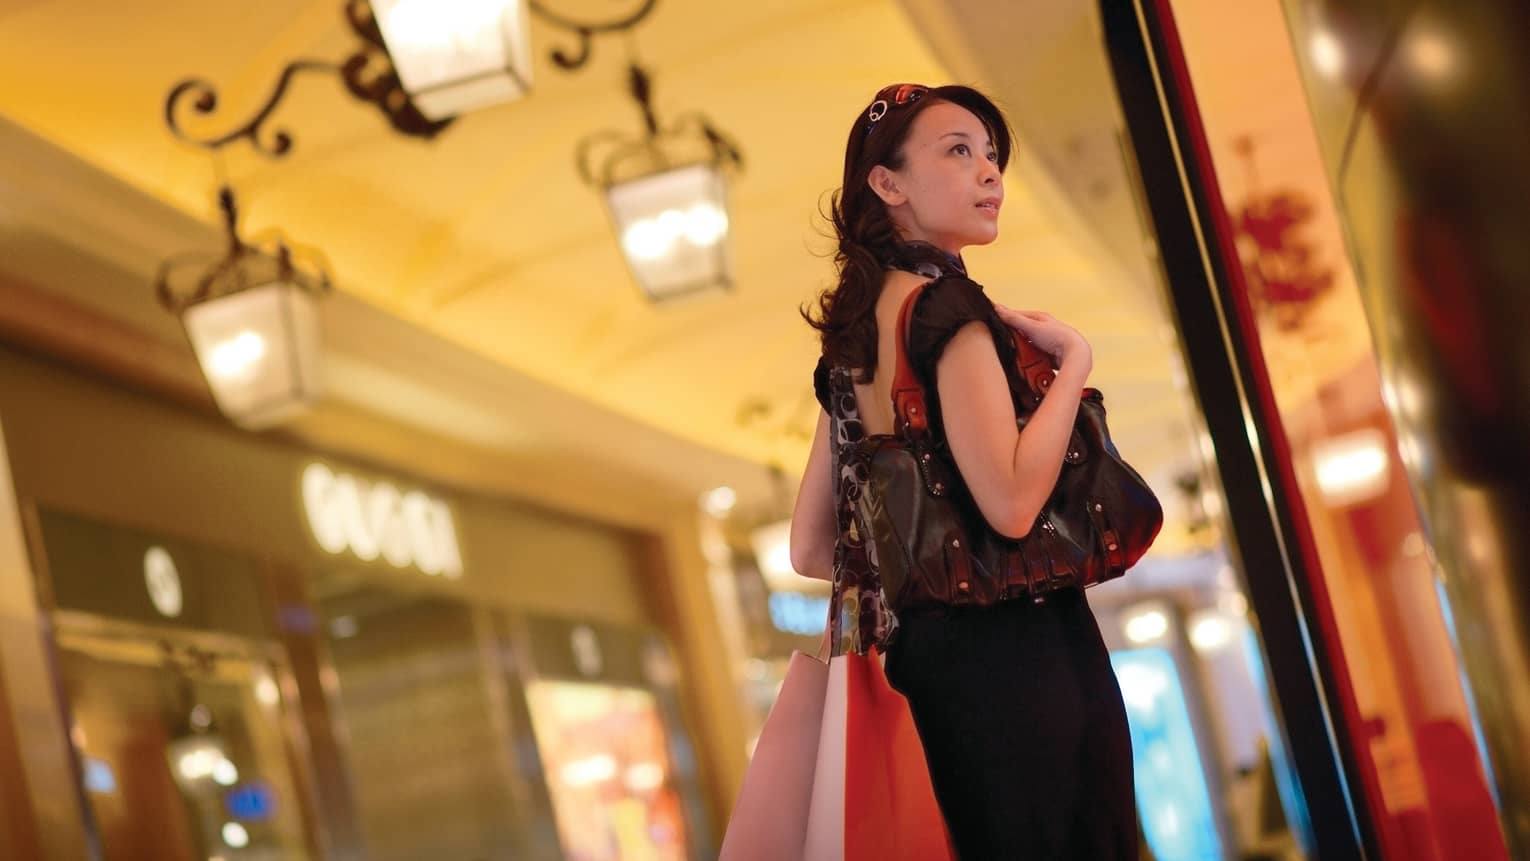 Fashionably-dressed woman carrying bags, designer purse in shopping mall